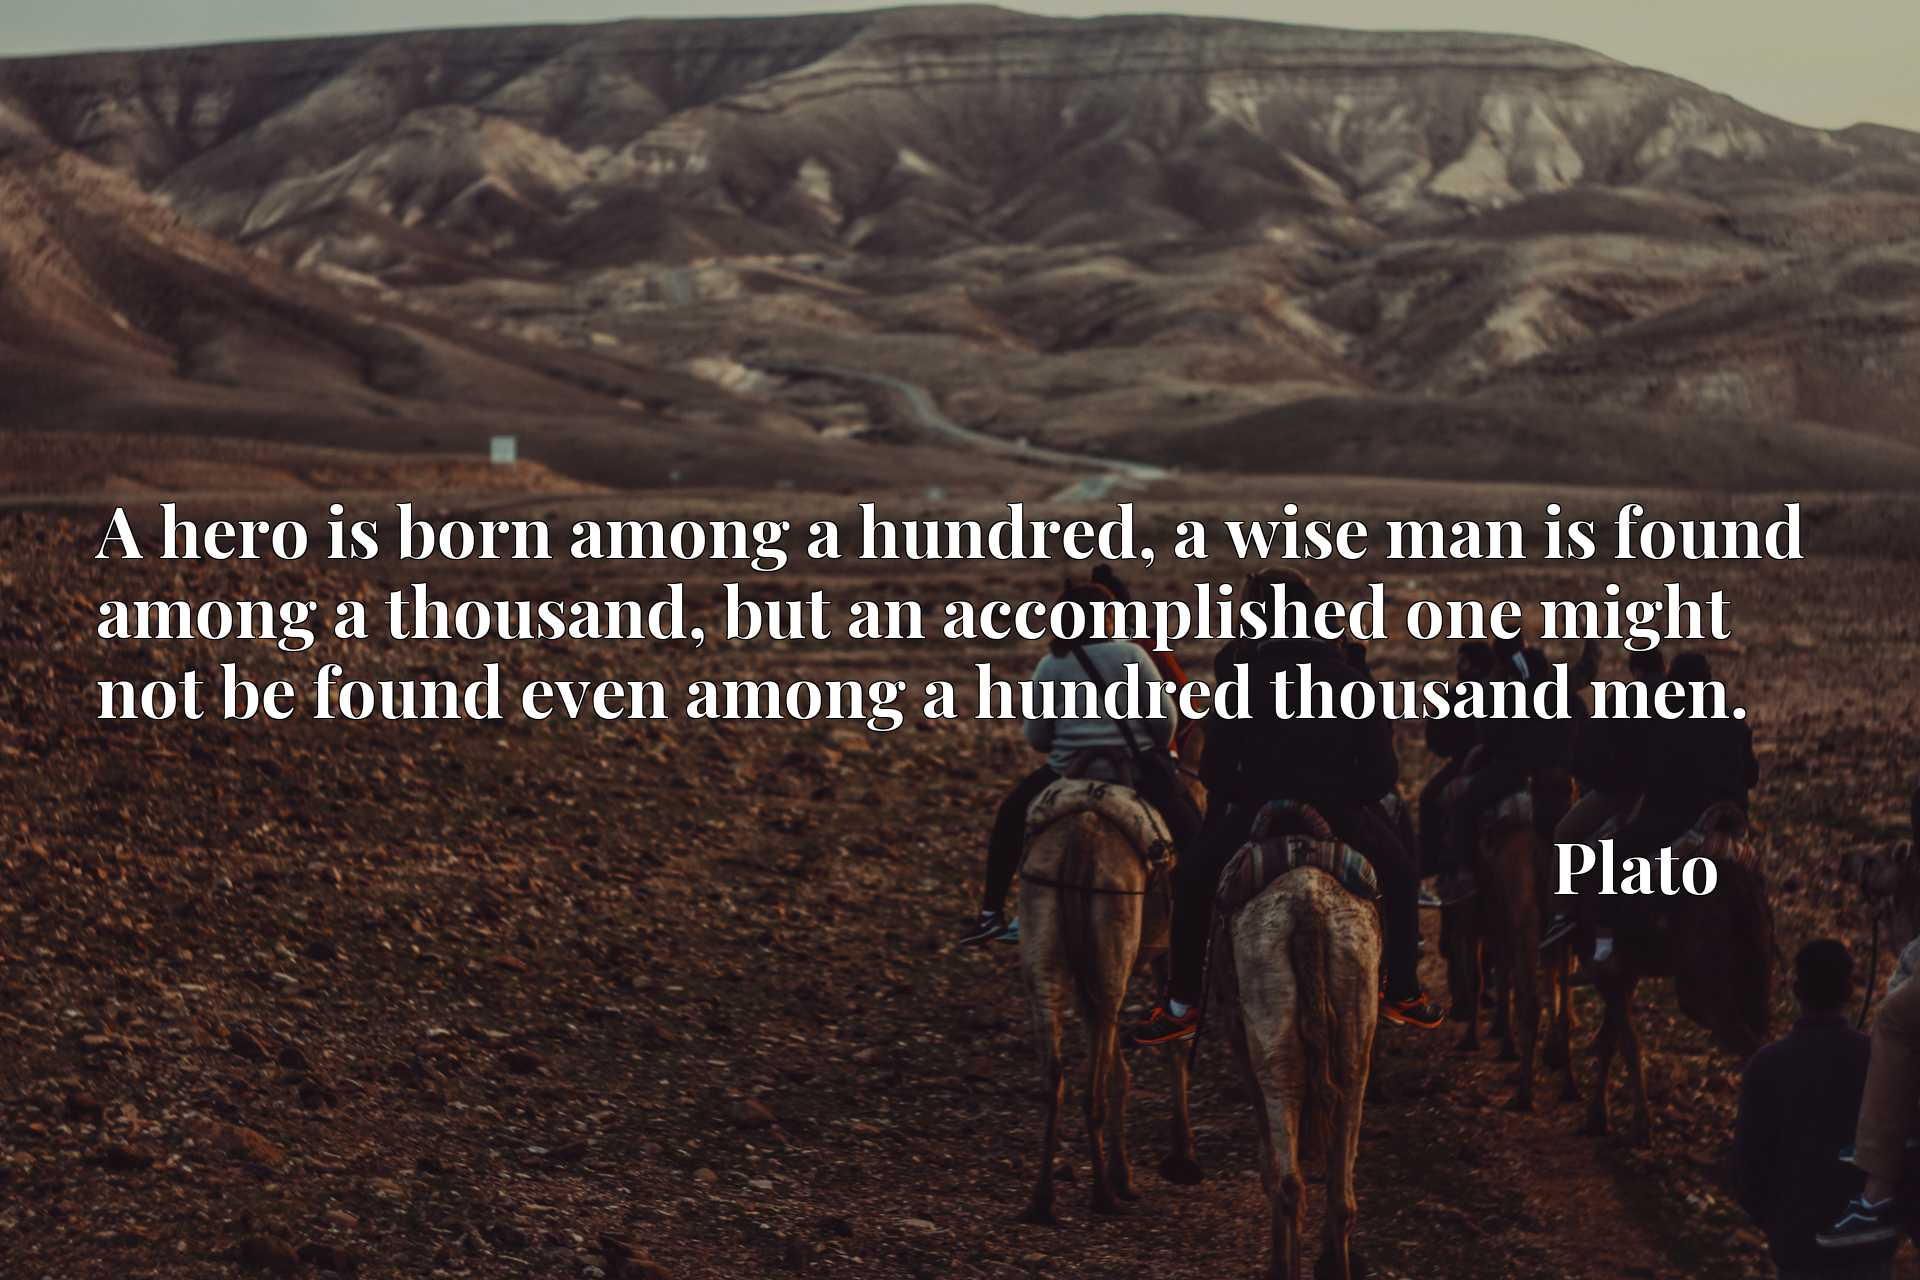 A hero is born among a hundred, a wise man is found among a thousand, but an accomplished one might not be found even among a hundred thousand men.